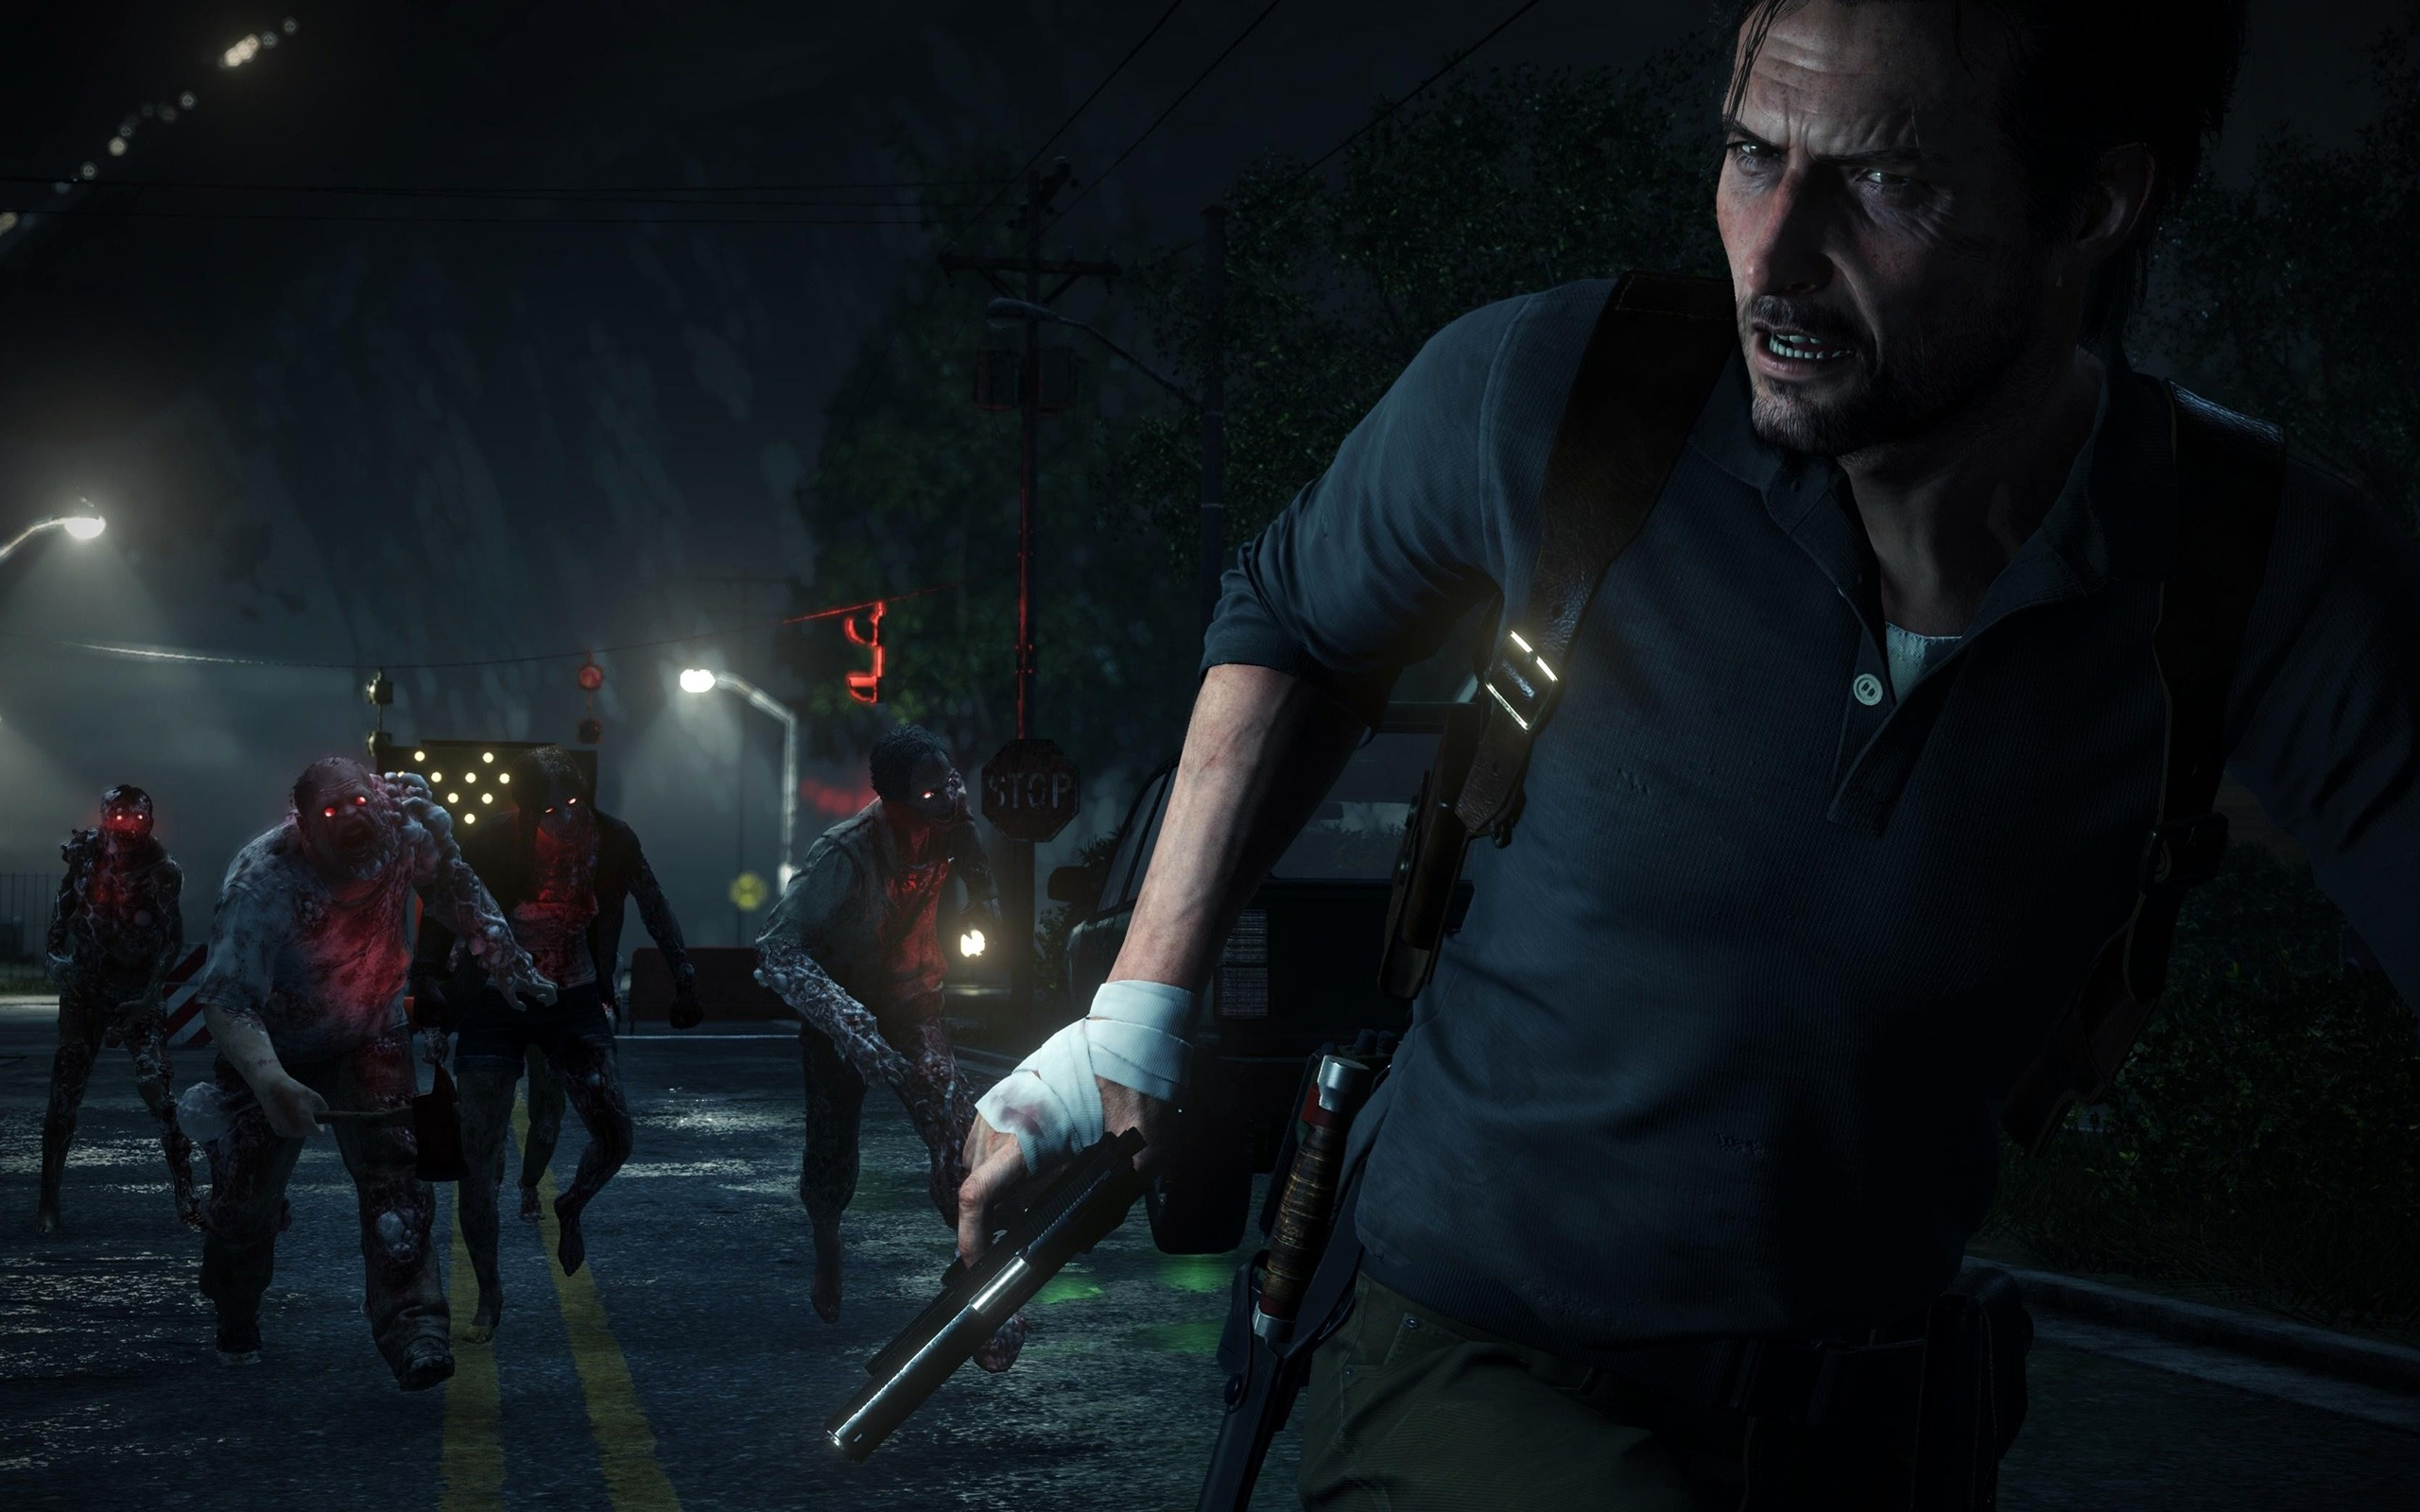 2017 The Evil Within 2 Full Hd Wallpaper: The Evil Within 2 2017 Game Wallpaper Preview